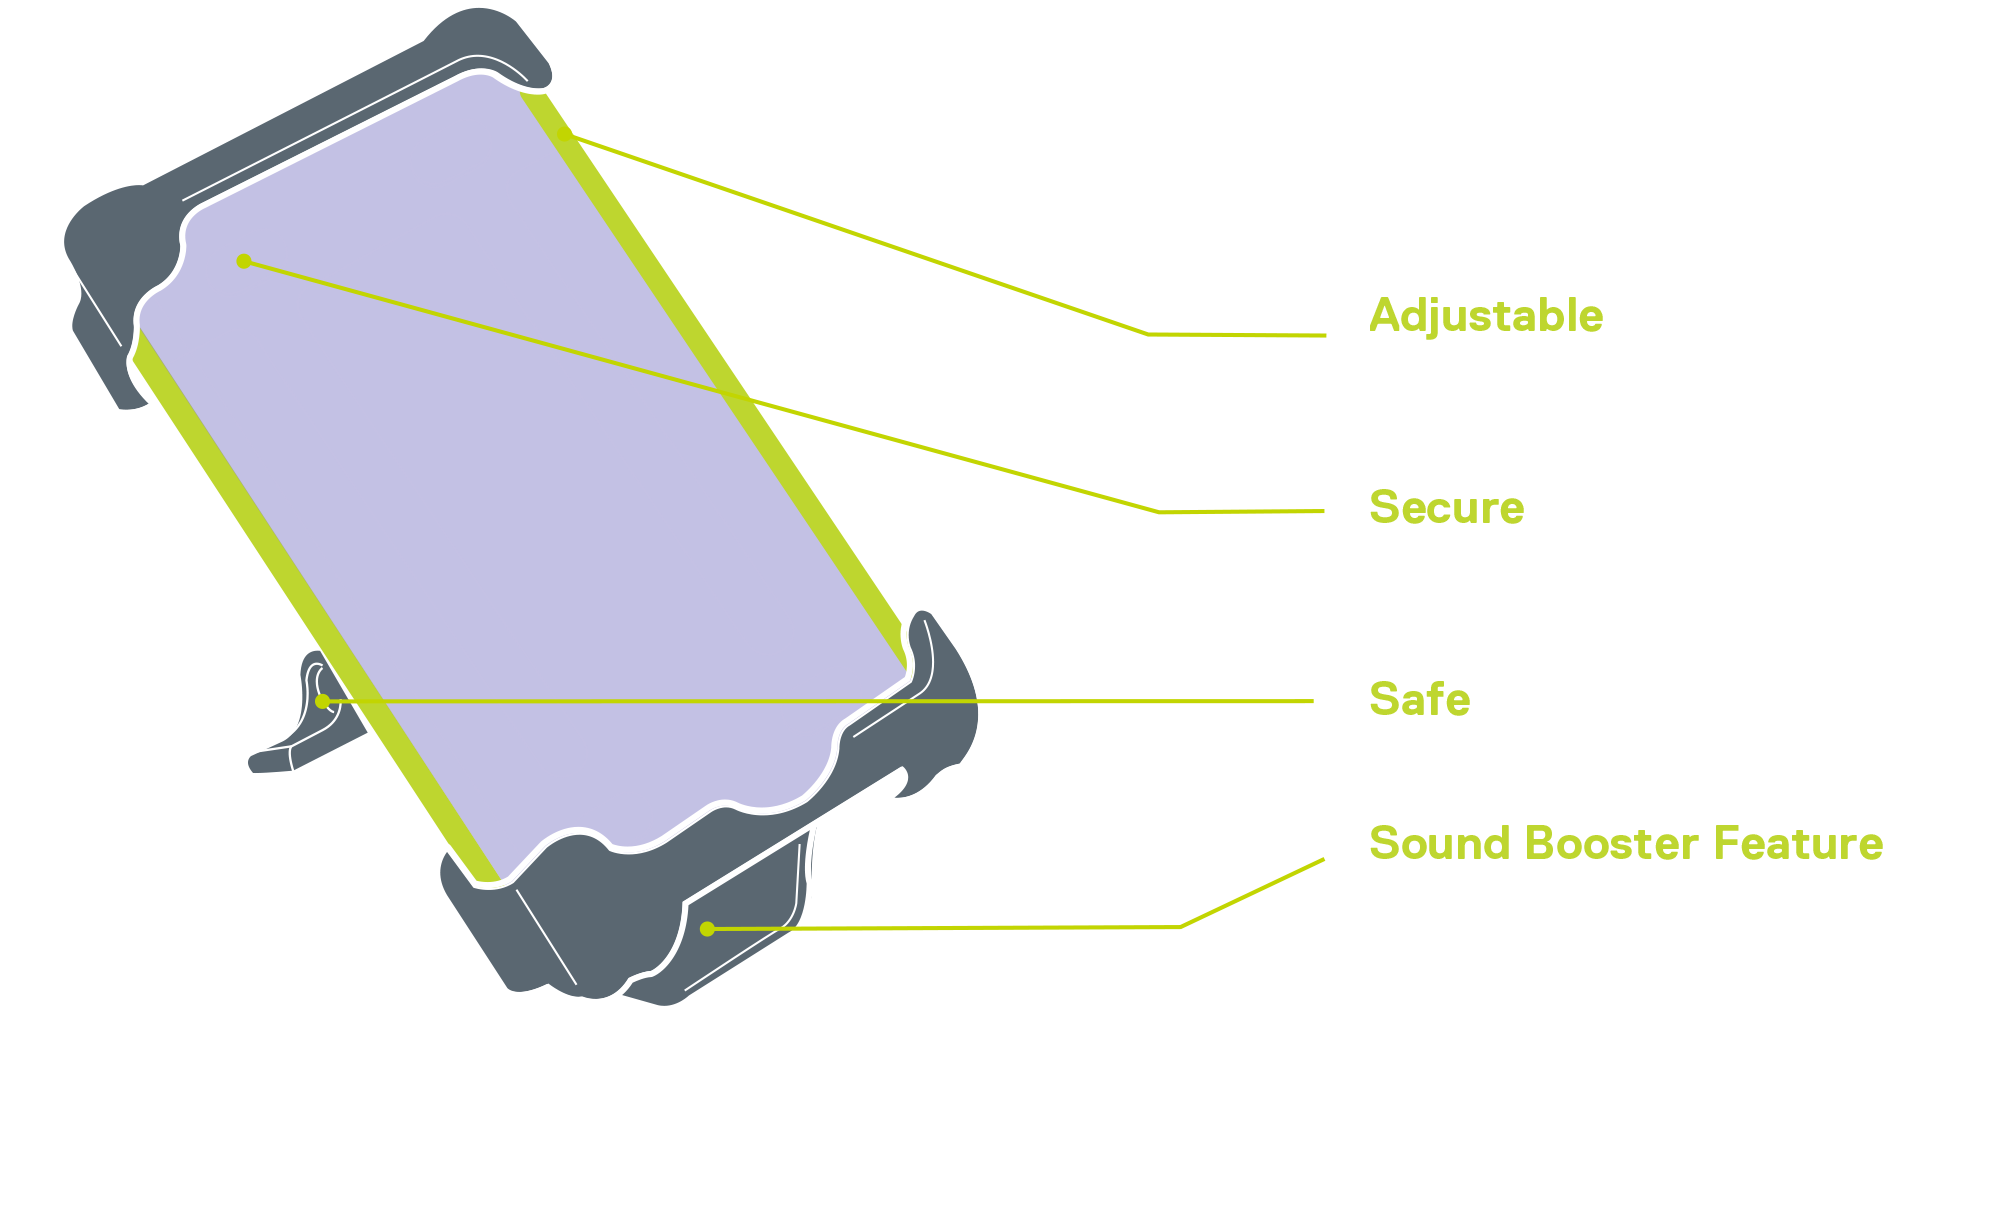 XL Holder diagram